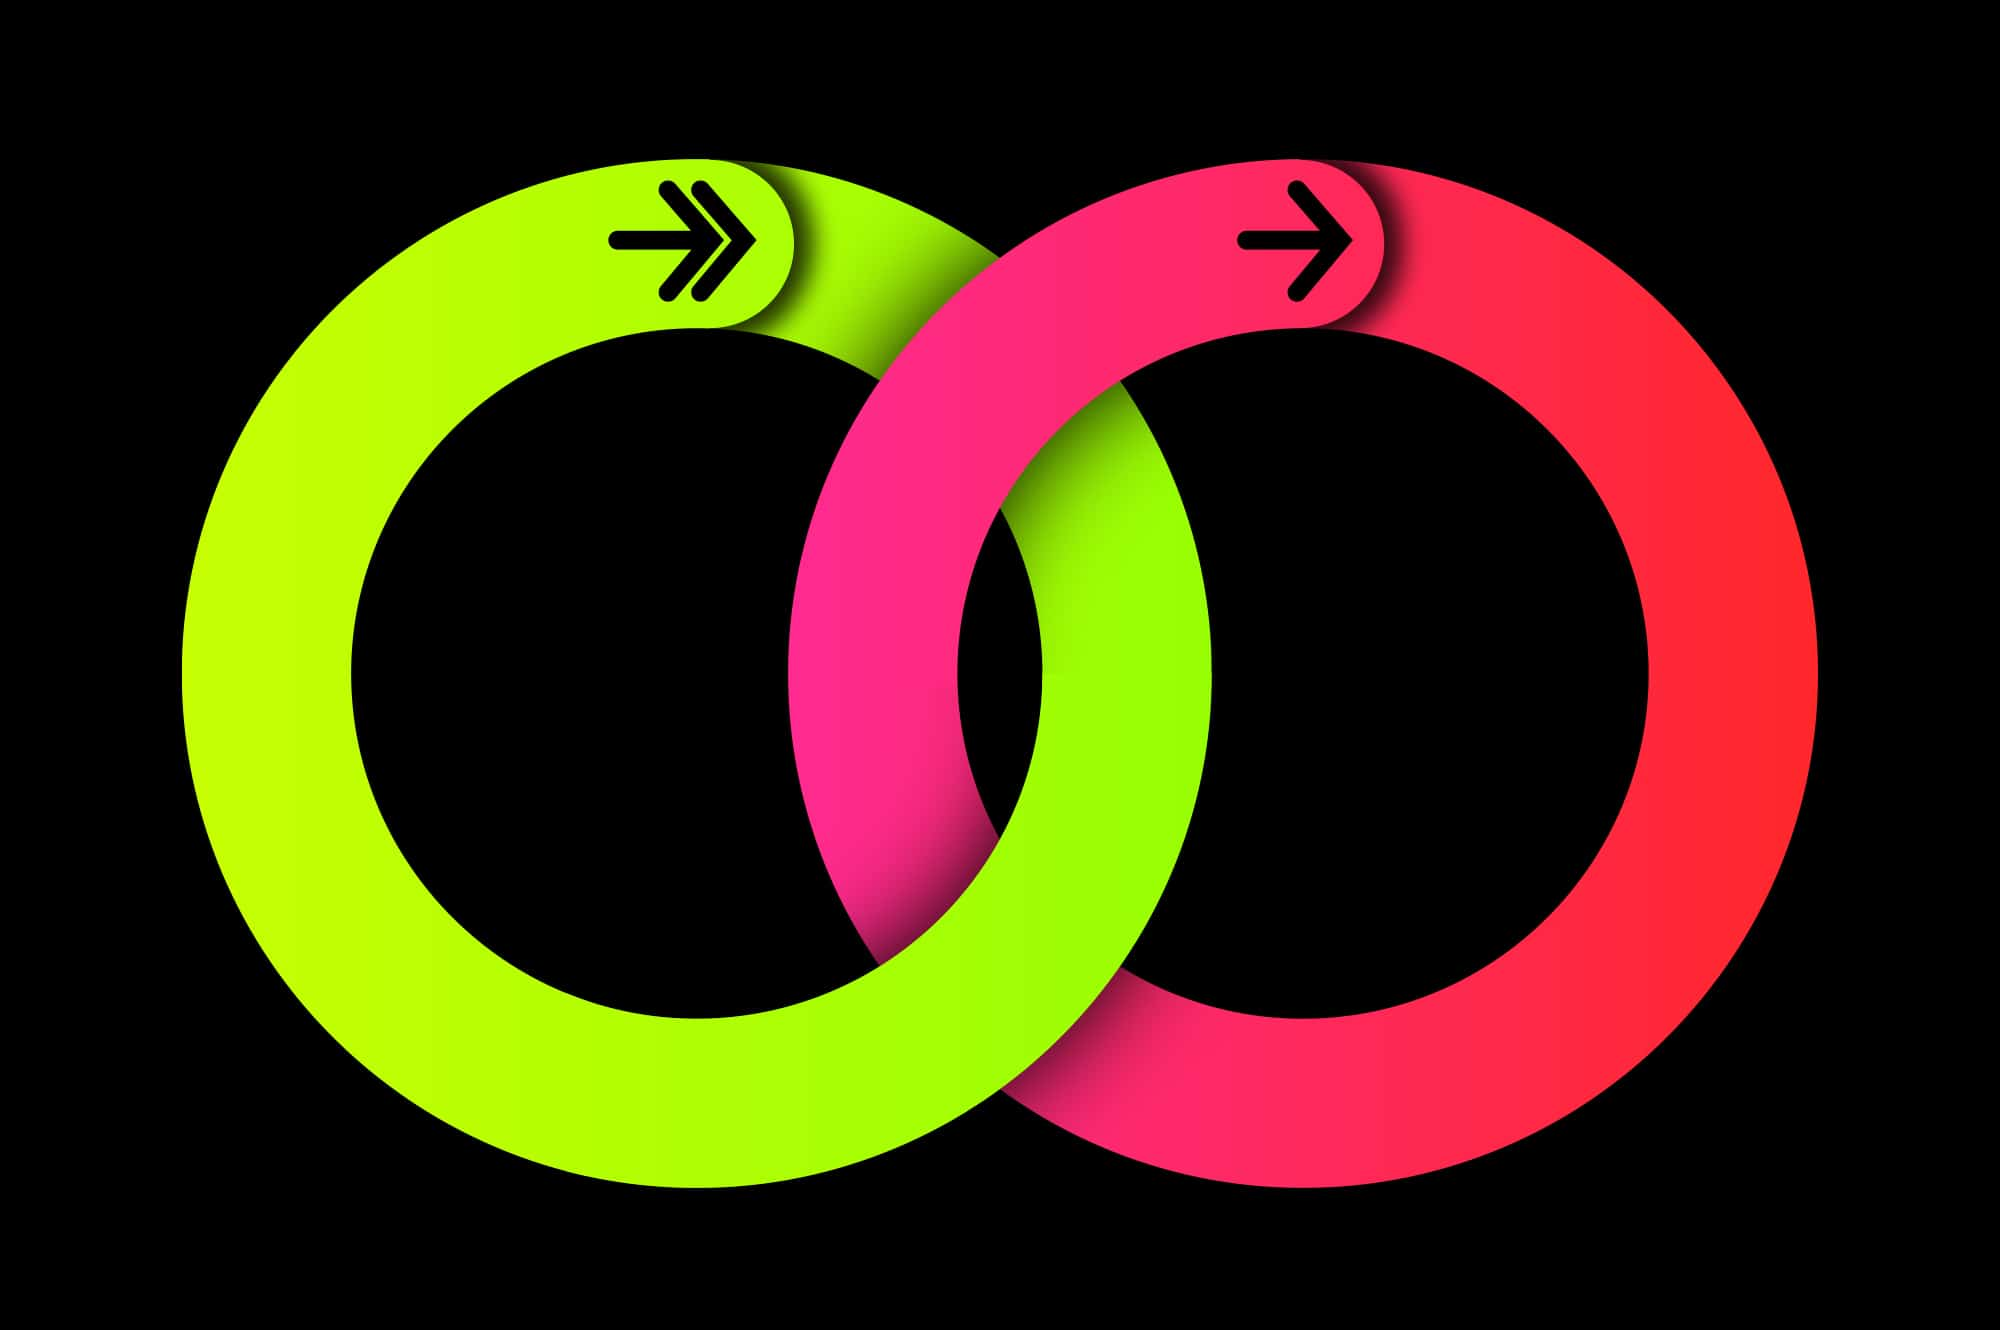 Apple Watch Move Ring Vs. Exercise Ring: What's the Difference?